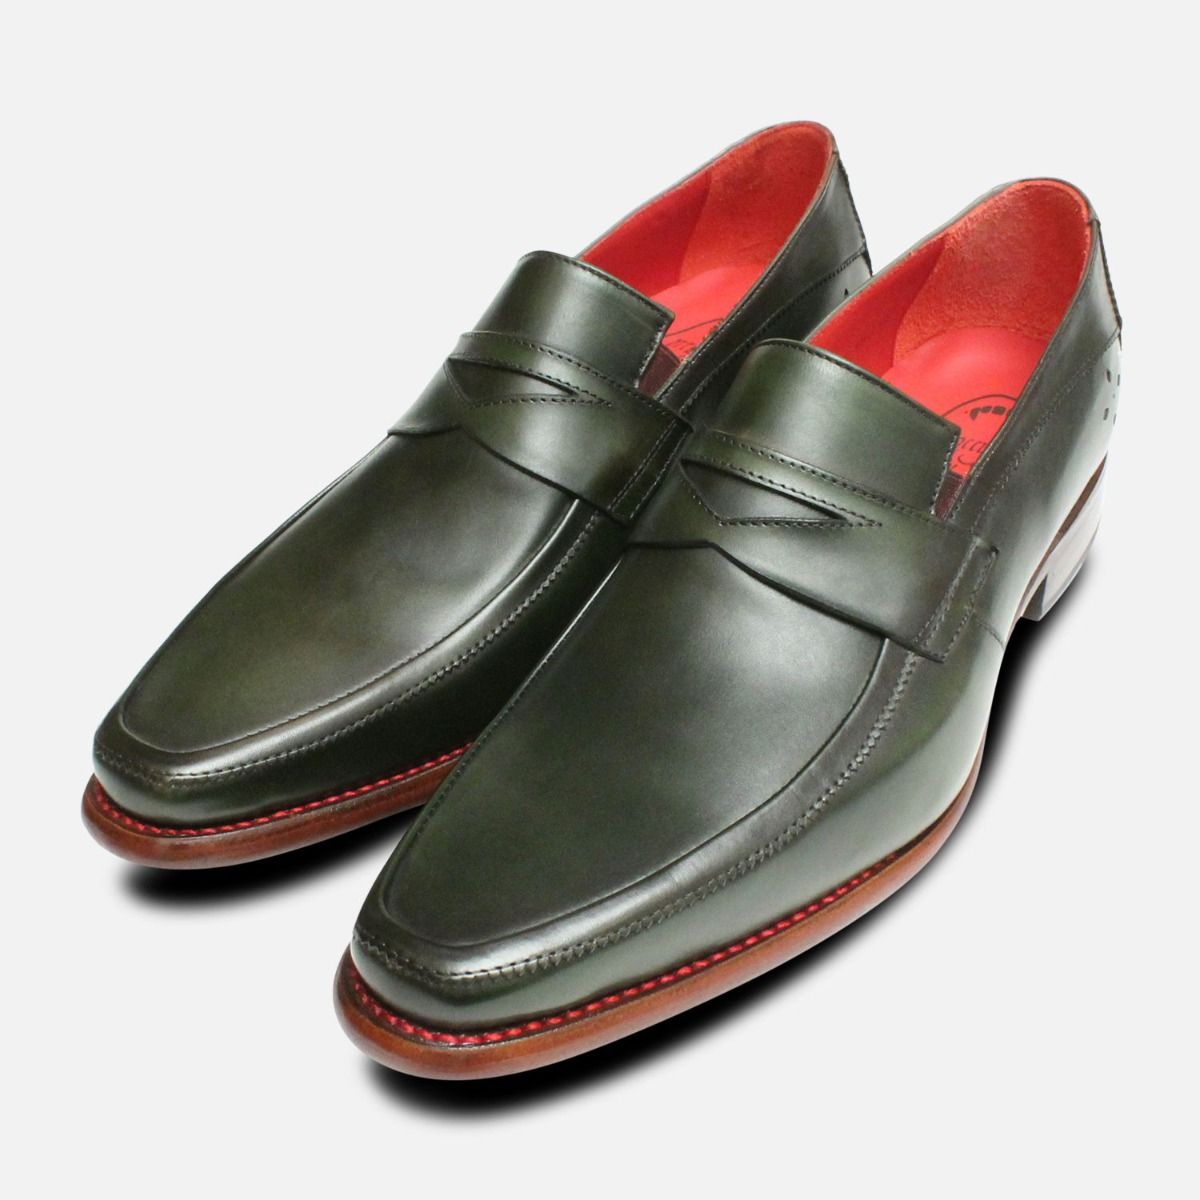 3a08715c850 Dark Green Jeffery West Mens Goodyear Welted Loafer Shoes